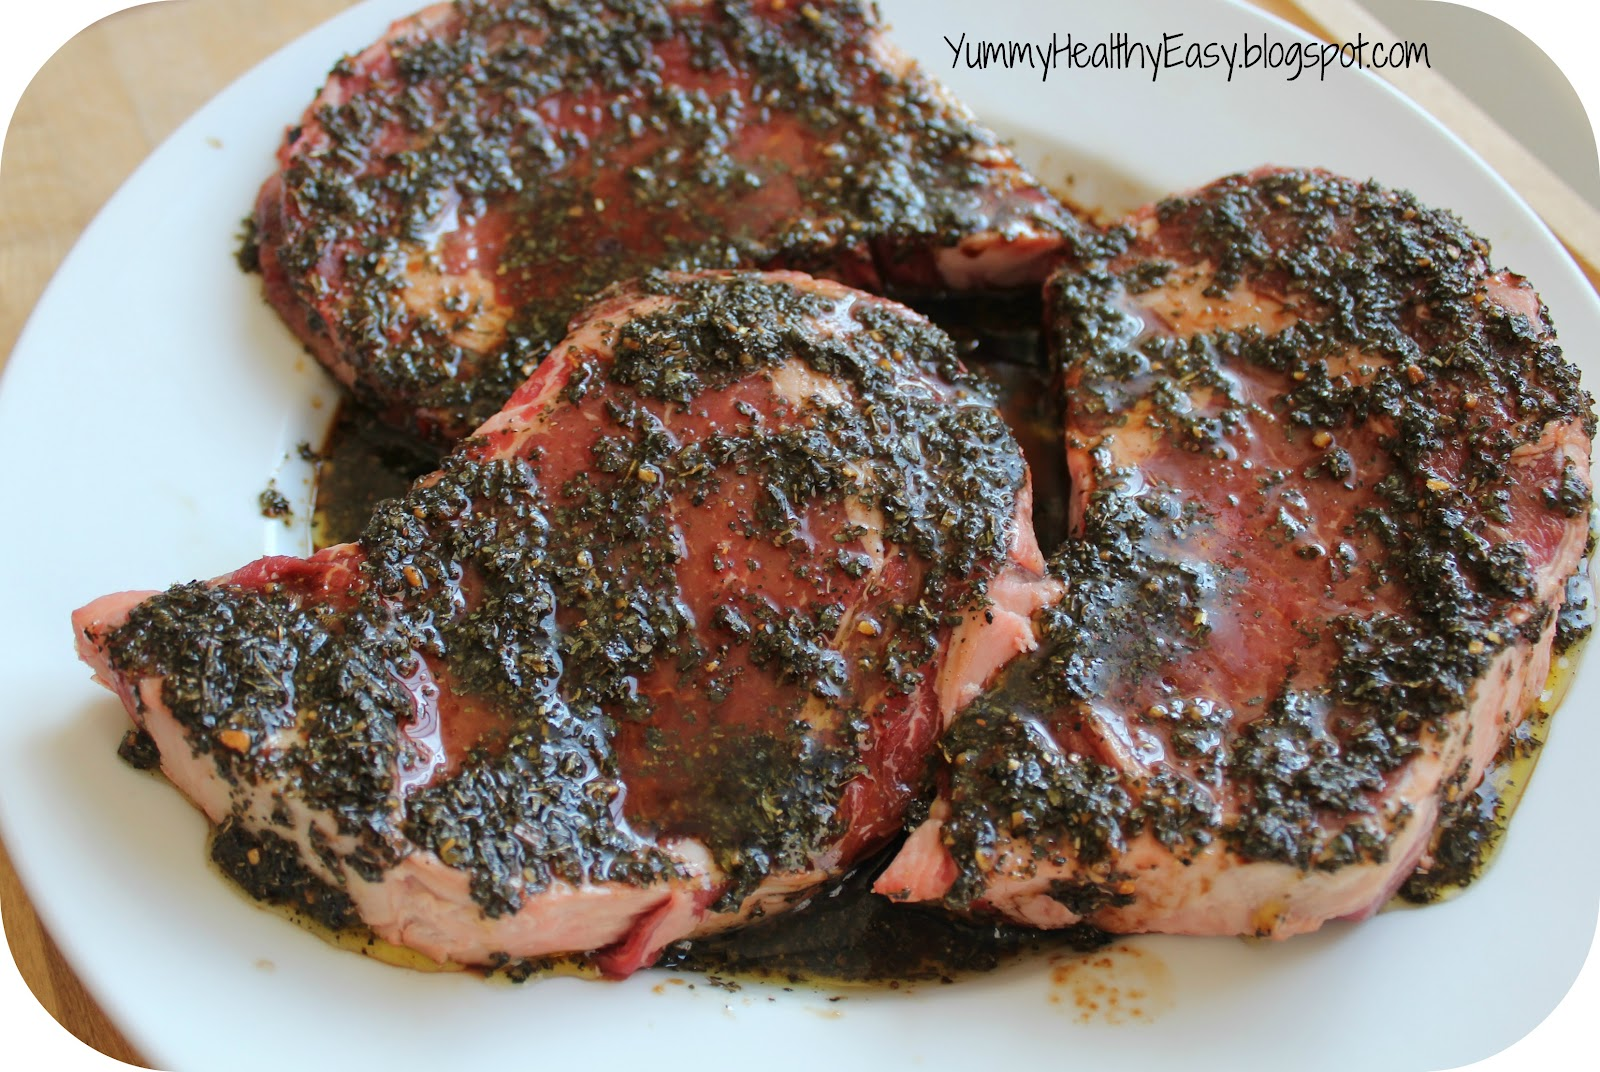 The BEST Steak Marinade - Yummy Healthy Easy